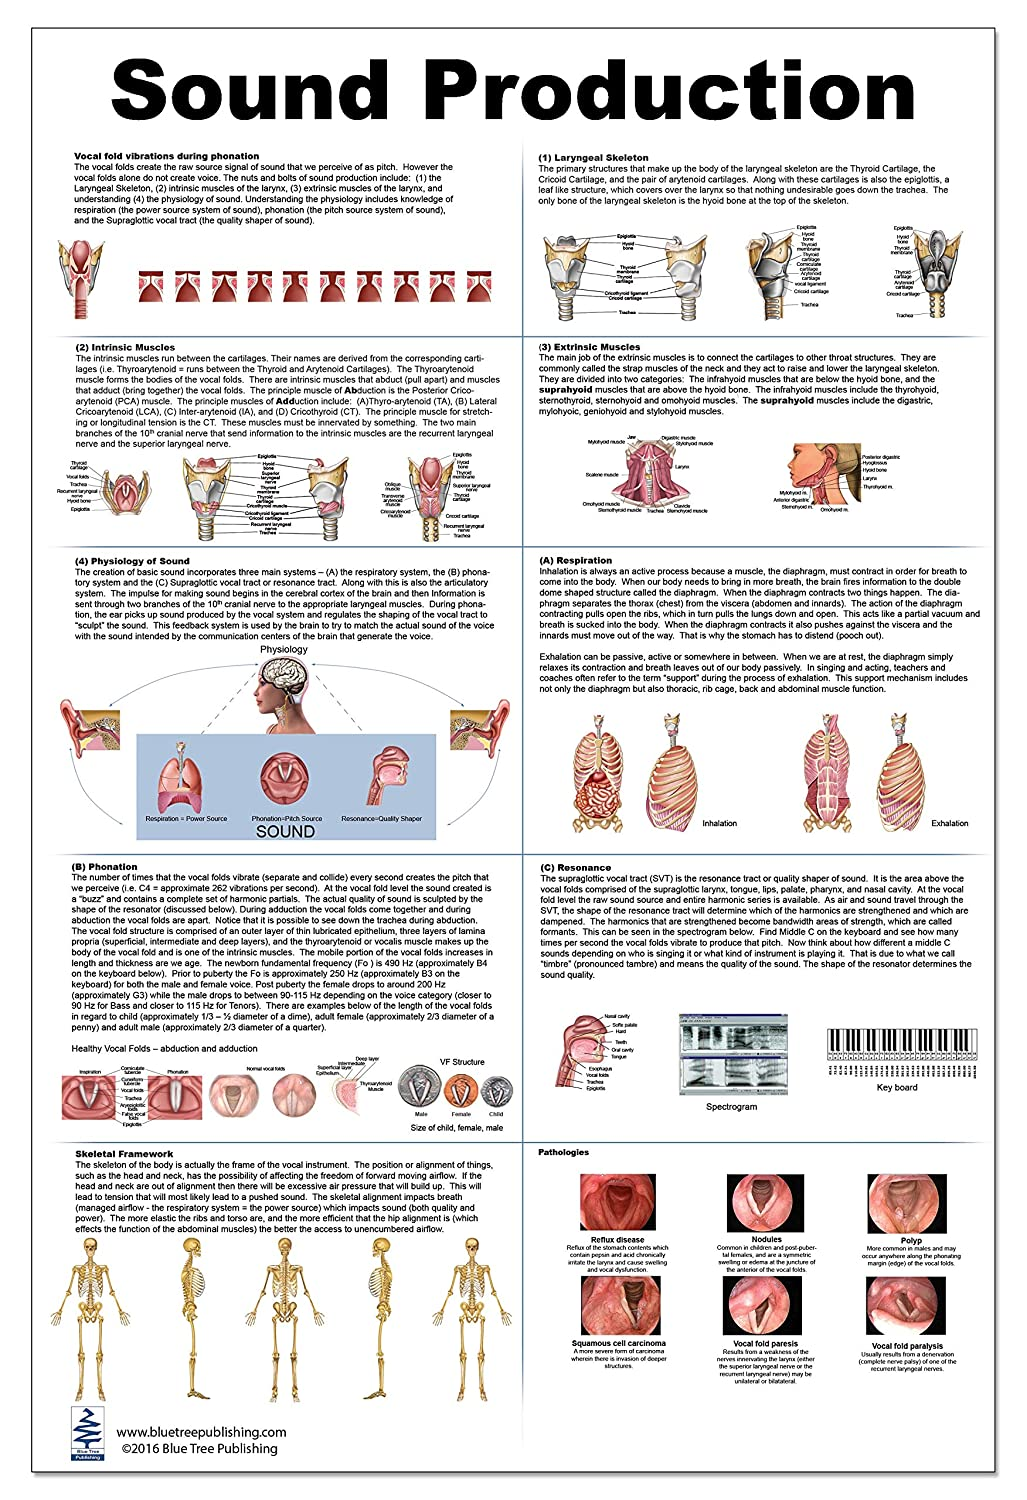 Amazon Sound Production Anatomy Poster 24x36inch Waterproof